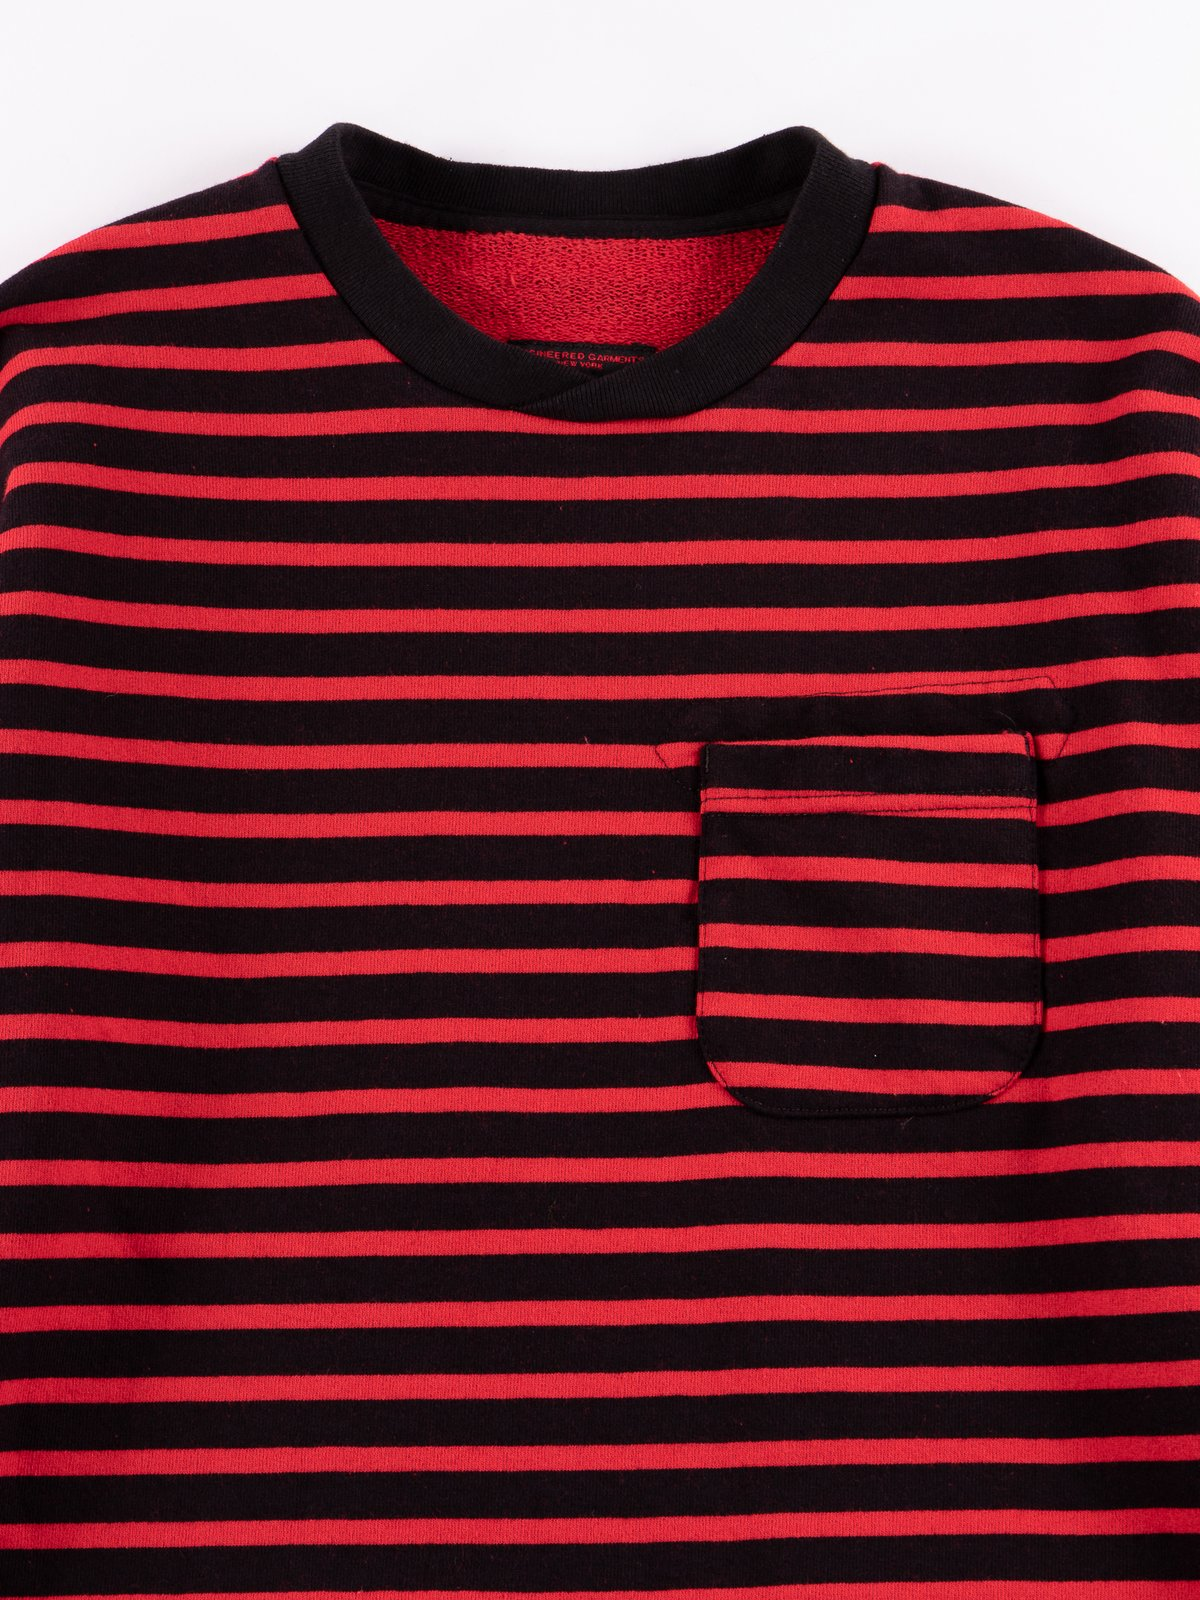 Black/Red Stripe 20oz French Terry Long Sleeve Crew Neck - Image 3